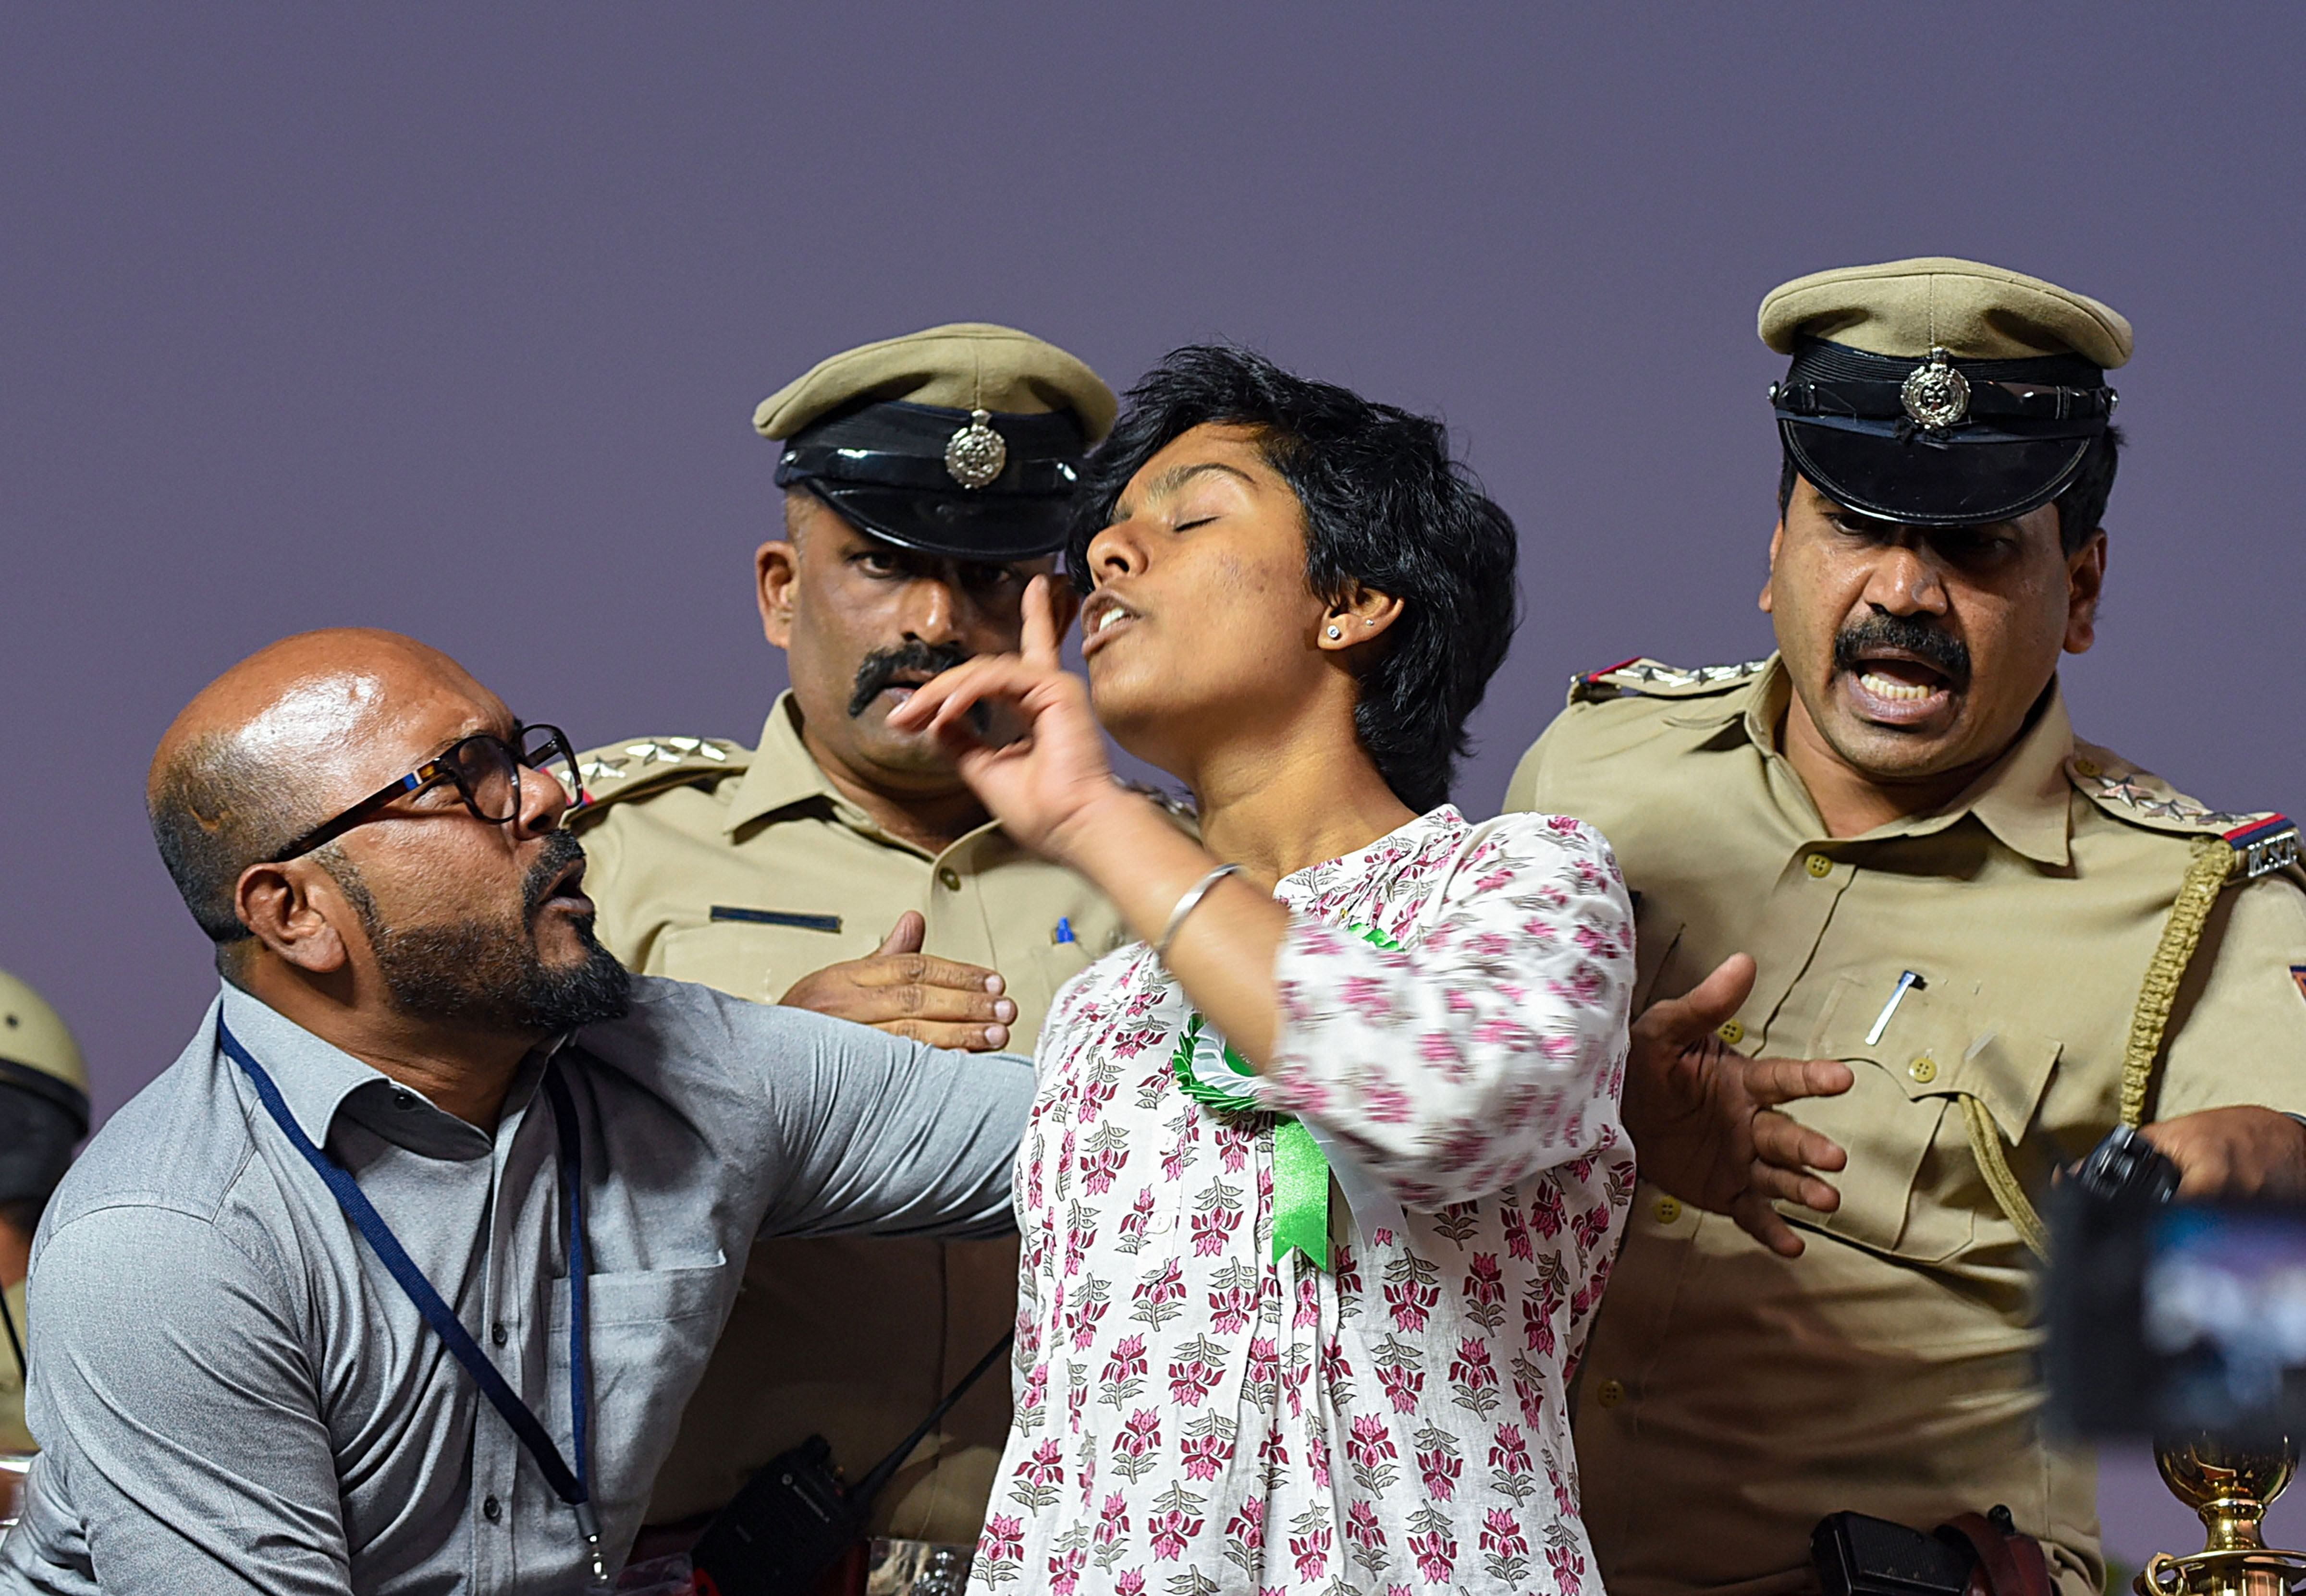 Police personnel attempt to stop a woman who allegedly raised pro-Pakistan slogans during a protest against CAA, NRC and NPR, in Bengaluru, Thursday, February 20, 2020